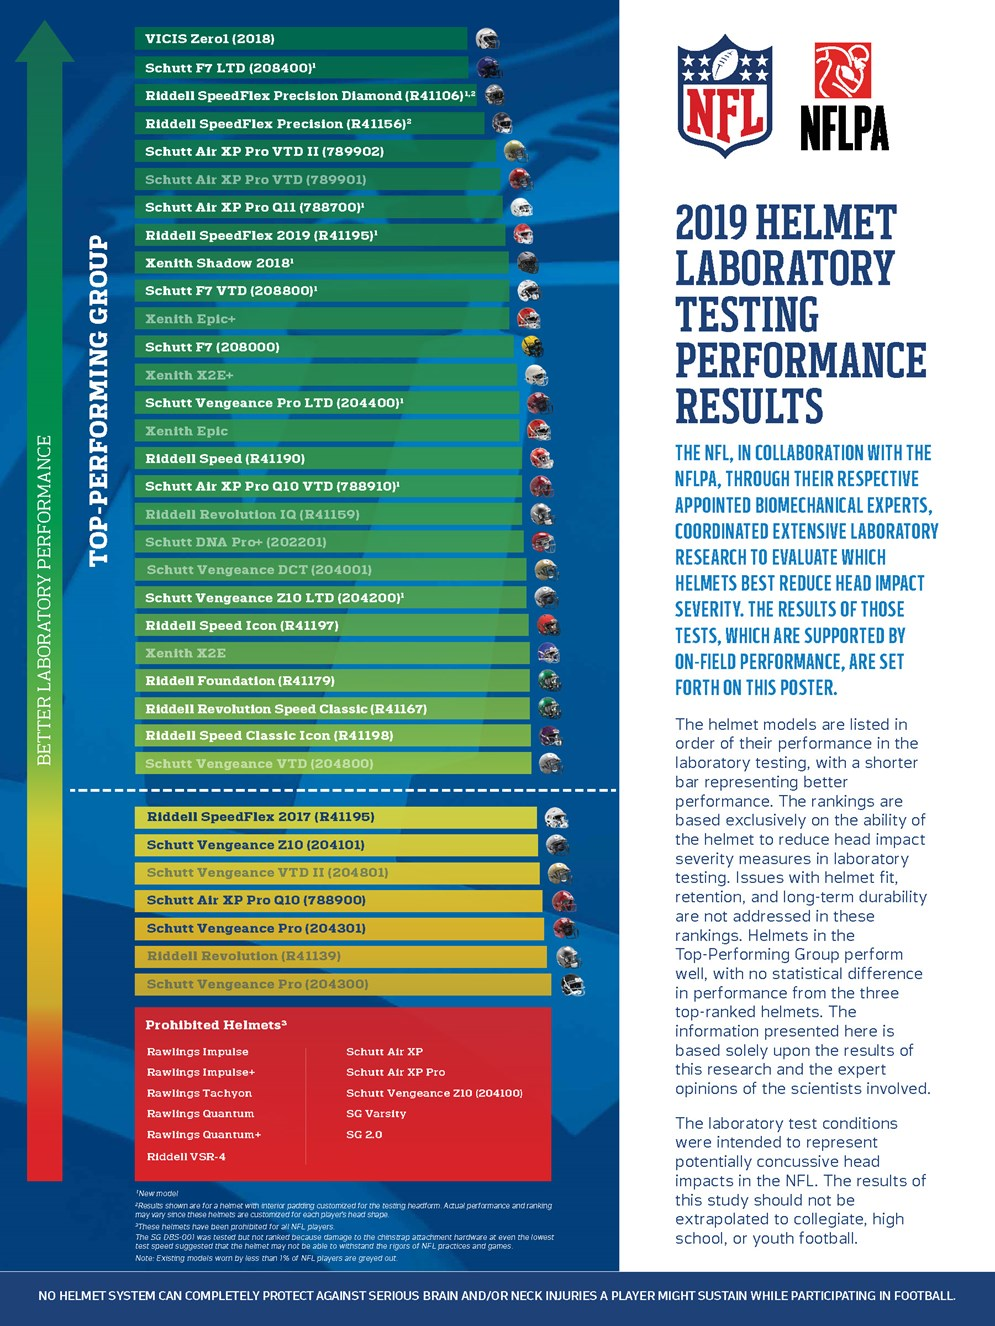 0d291527 NFL and NFLPA Release 2019 Helmet Laboratory Testing Performance ...